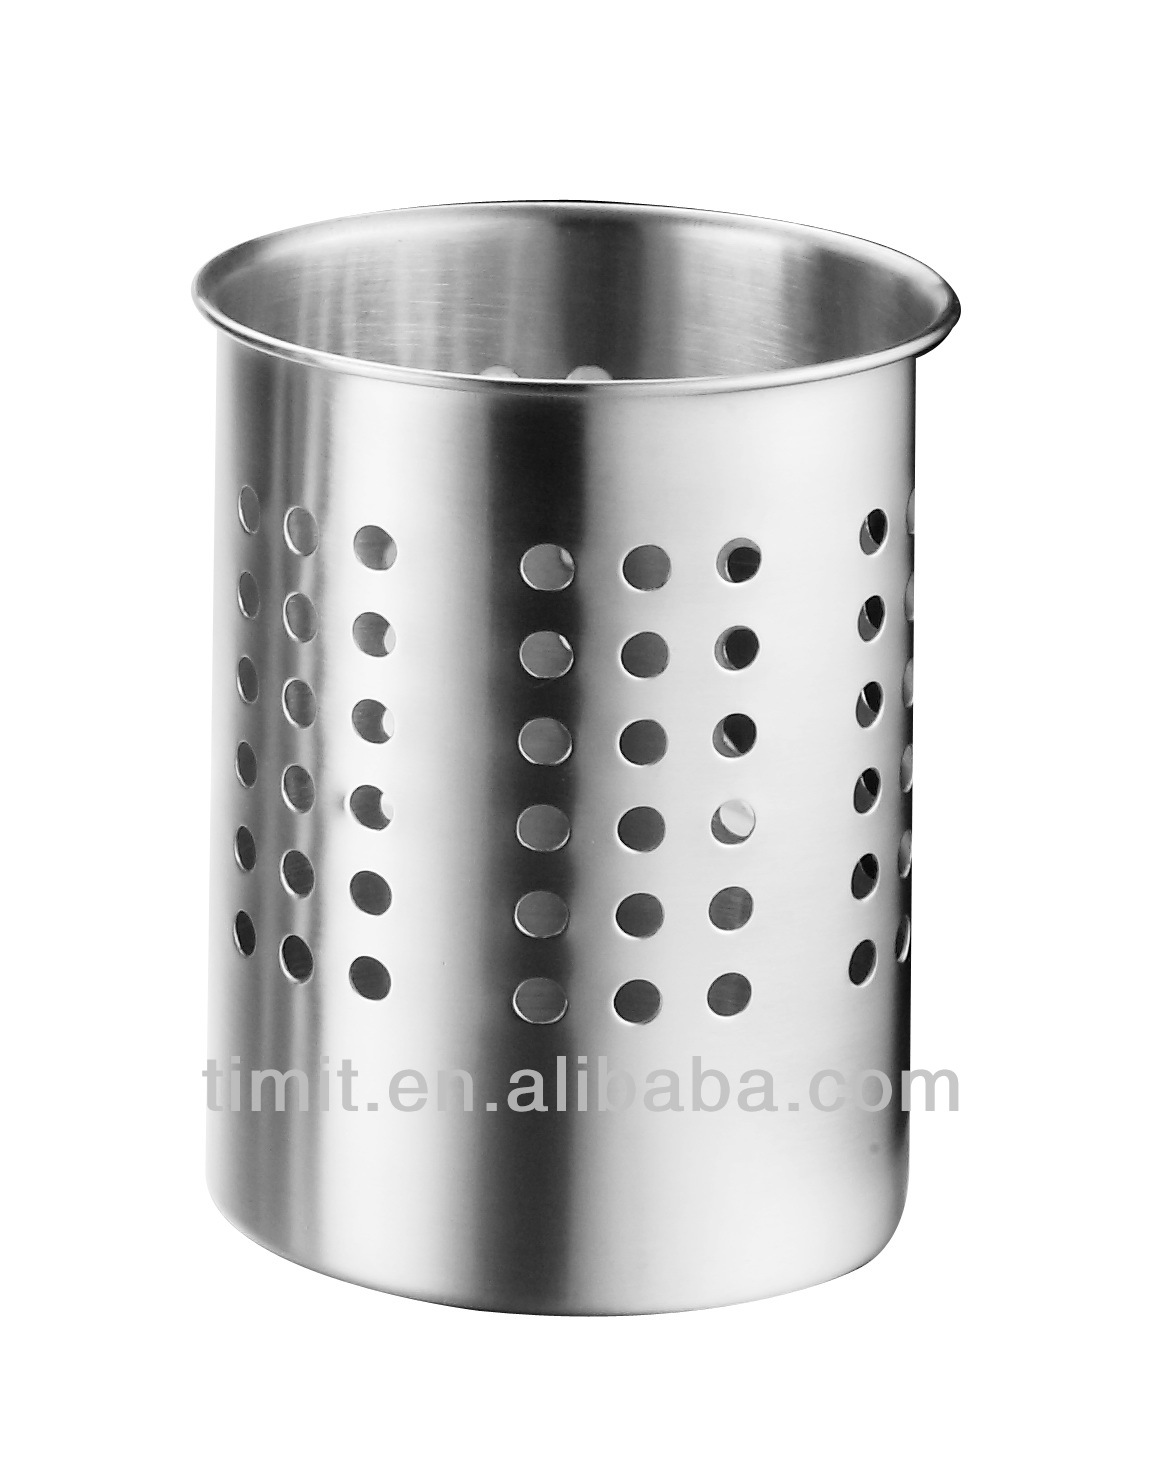 Stainless Steel Cutlery Holder Round Chopstick Container Fork With Hole Utensil